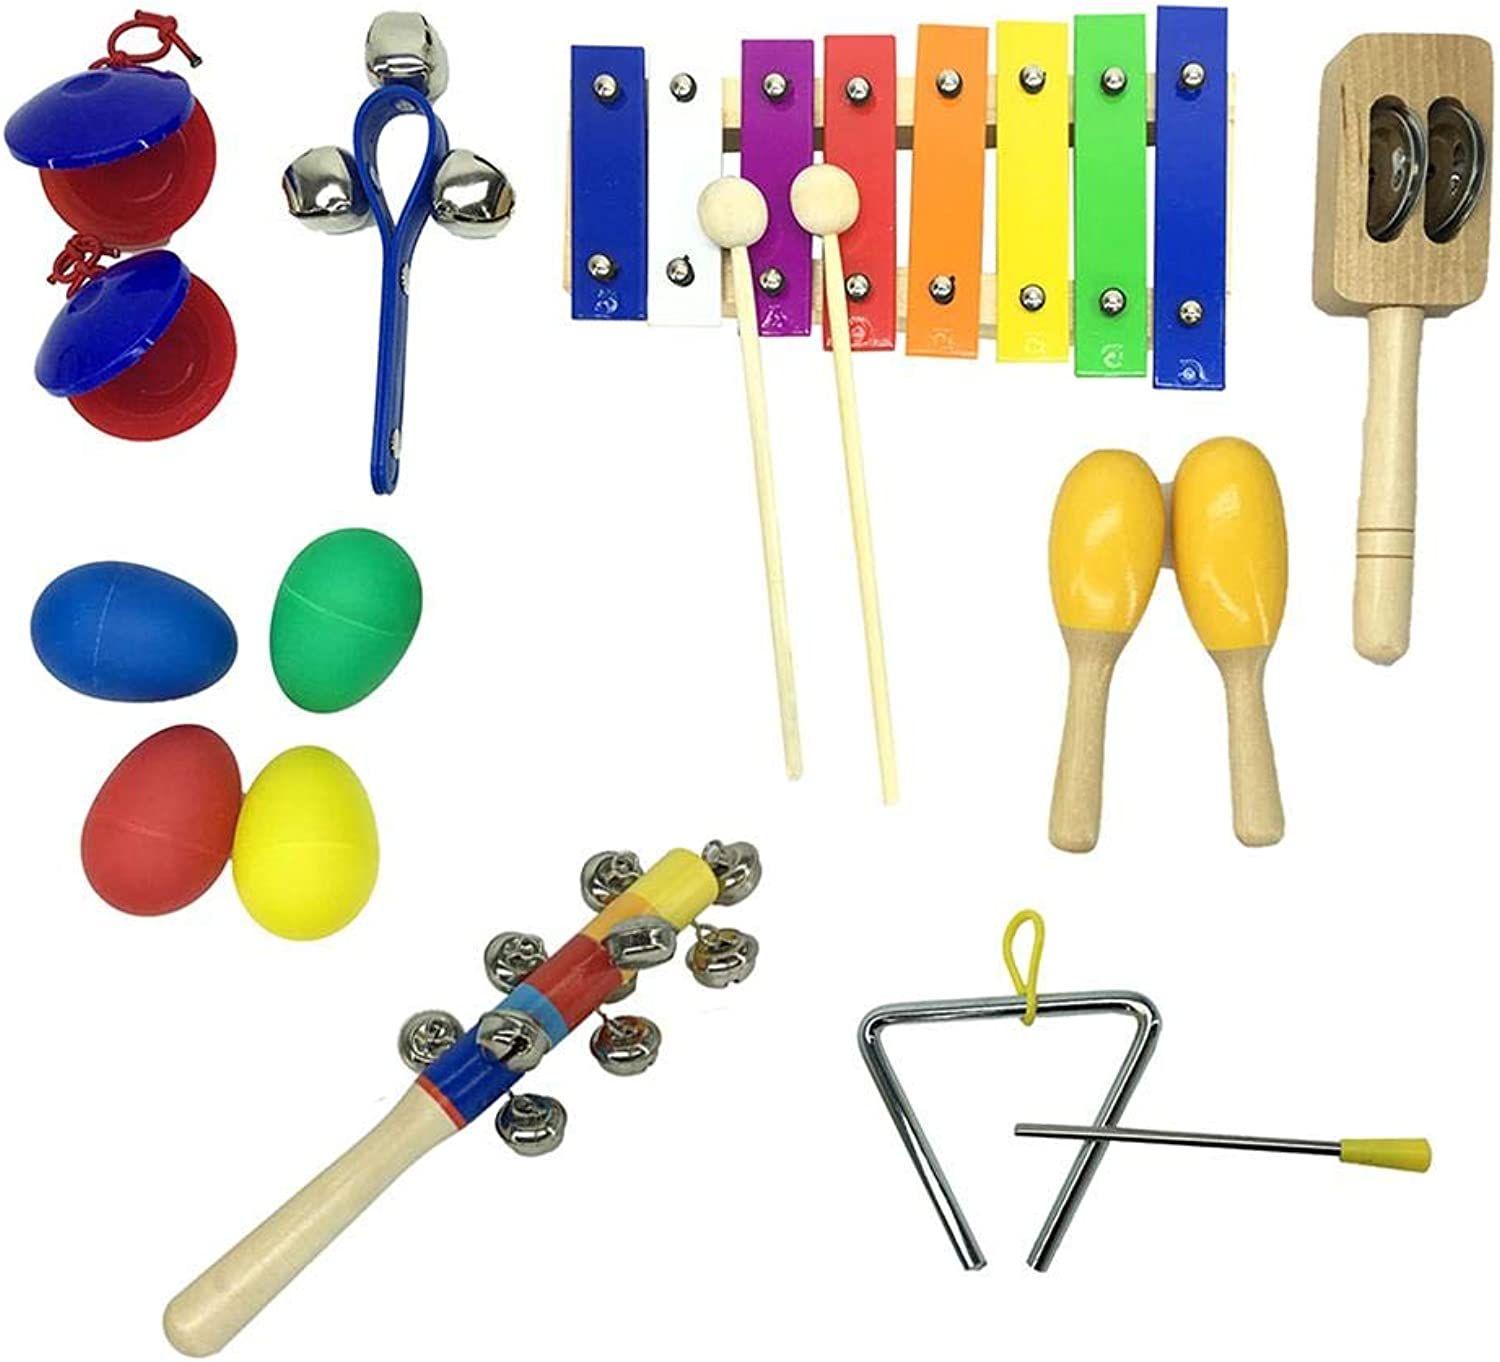 Percussion Instrument Toy, 10pcs Percussion Instruments Set Xylophone Hammer Kids Musical Toys Storage Backpack Included